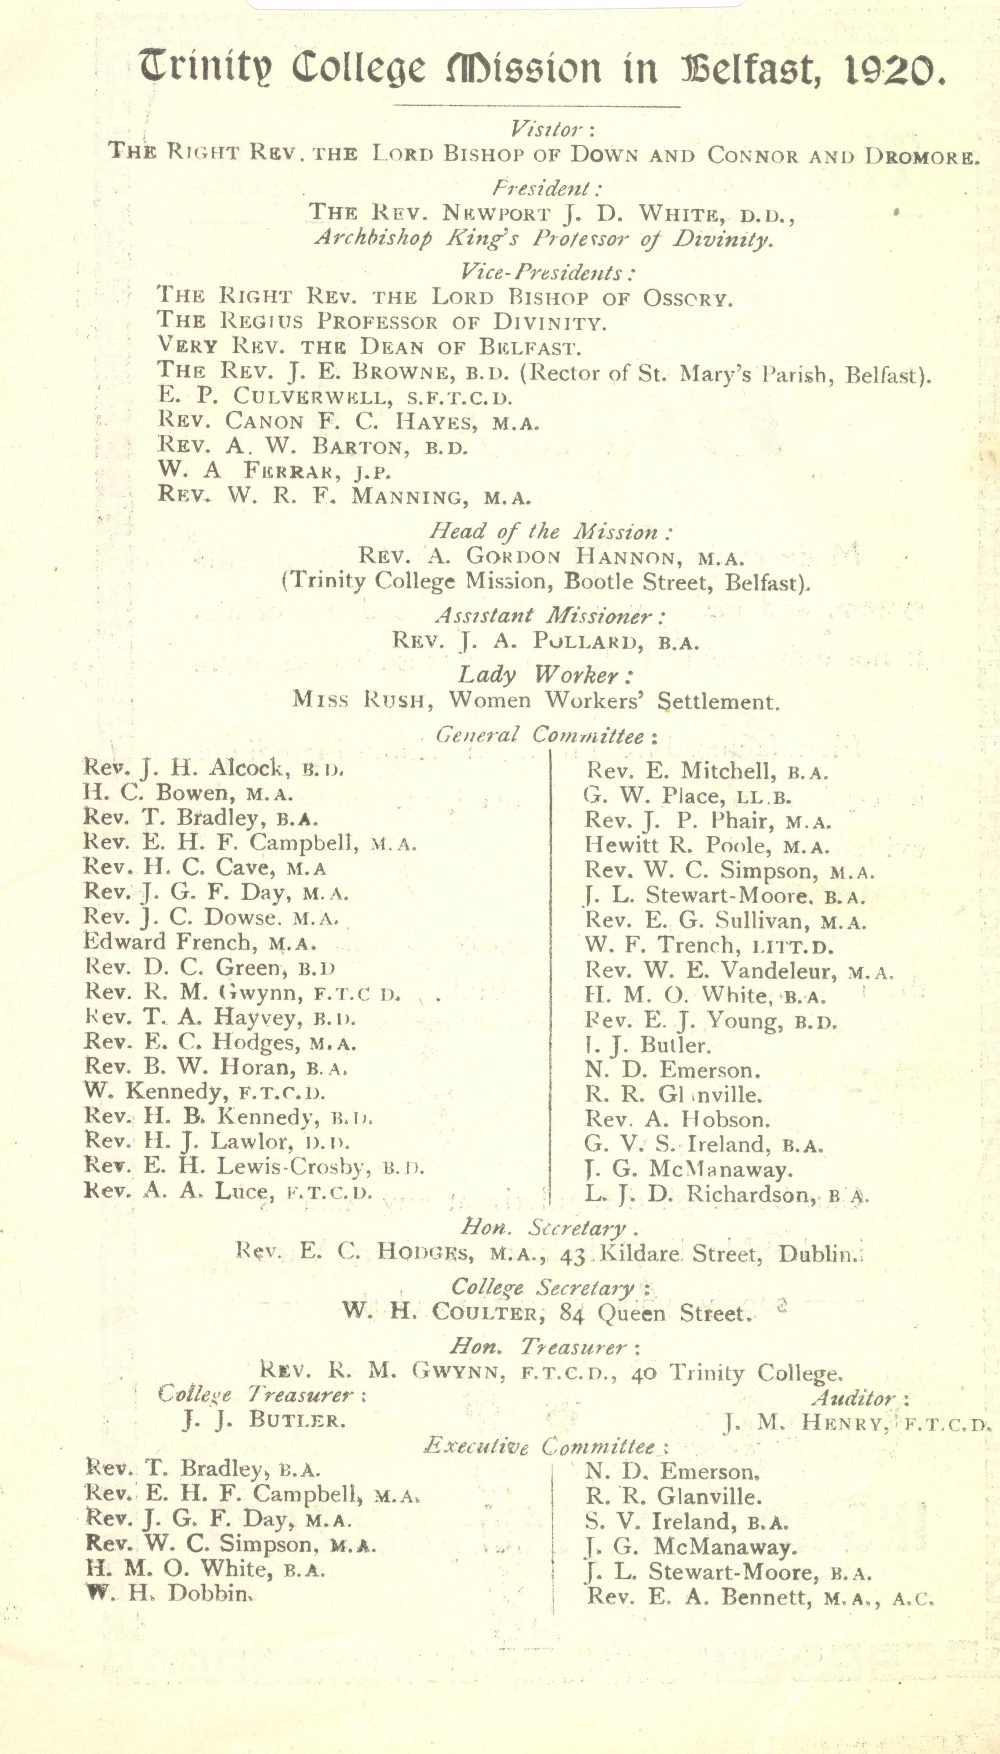 Officers and committee of the Mission, as published in Trinity College Mission in Belfast, 1920: A Short Story of its Origin, its Growth, its Prospects (Dublin, 1920)